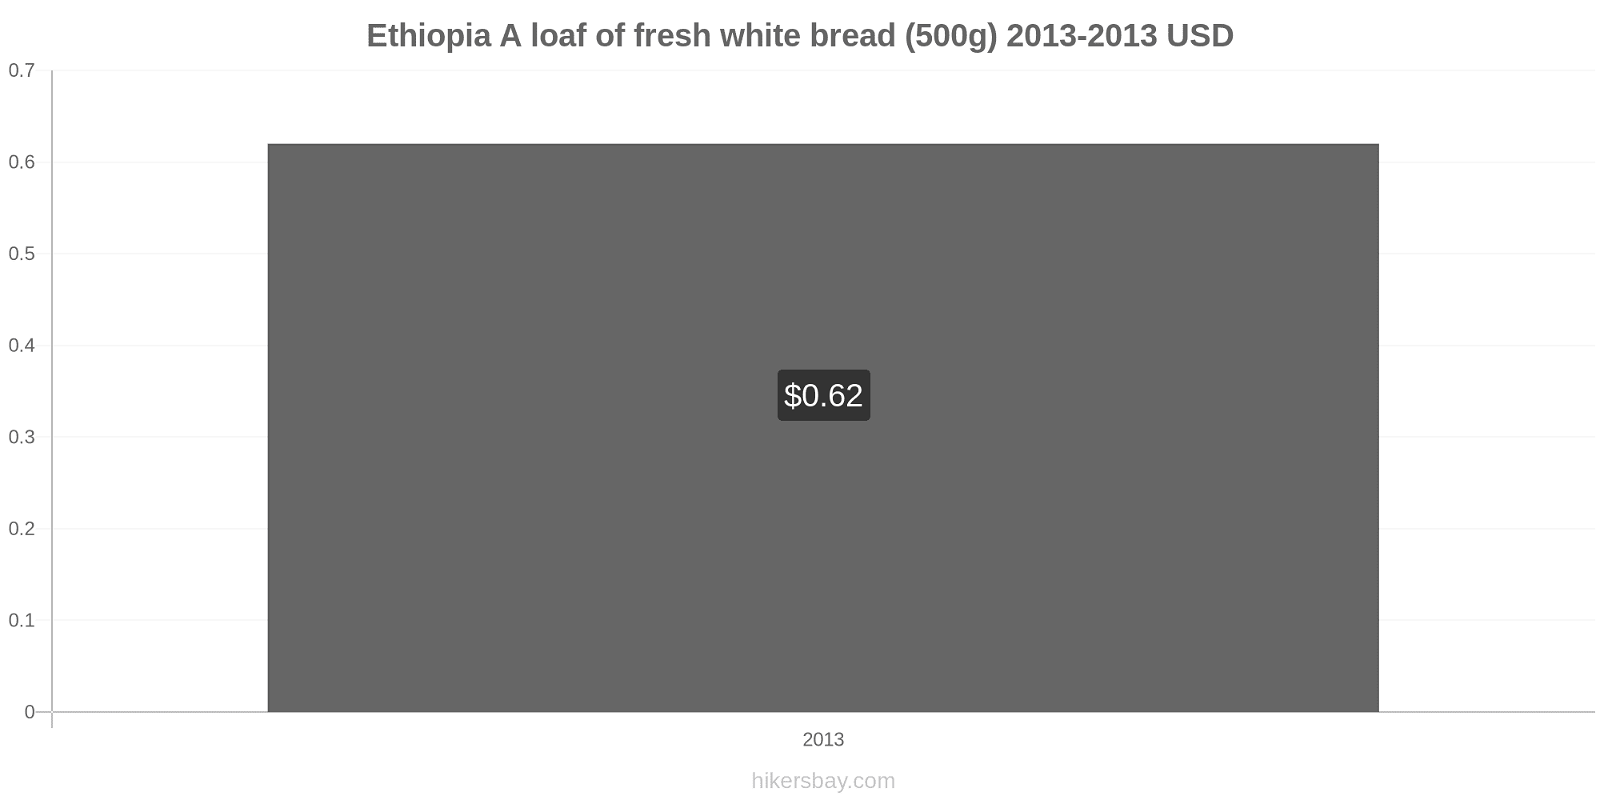 Ethiopia price changes A loaf of fresh white bread (500g) hikersbay.com